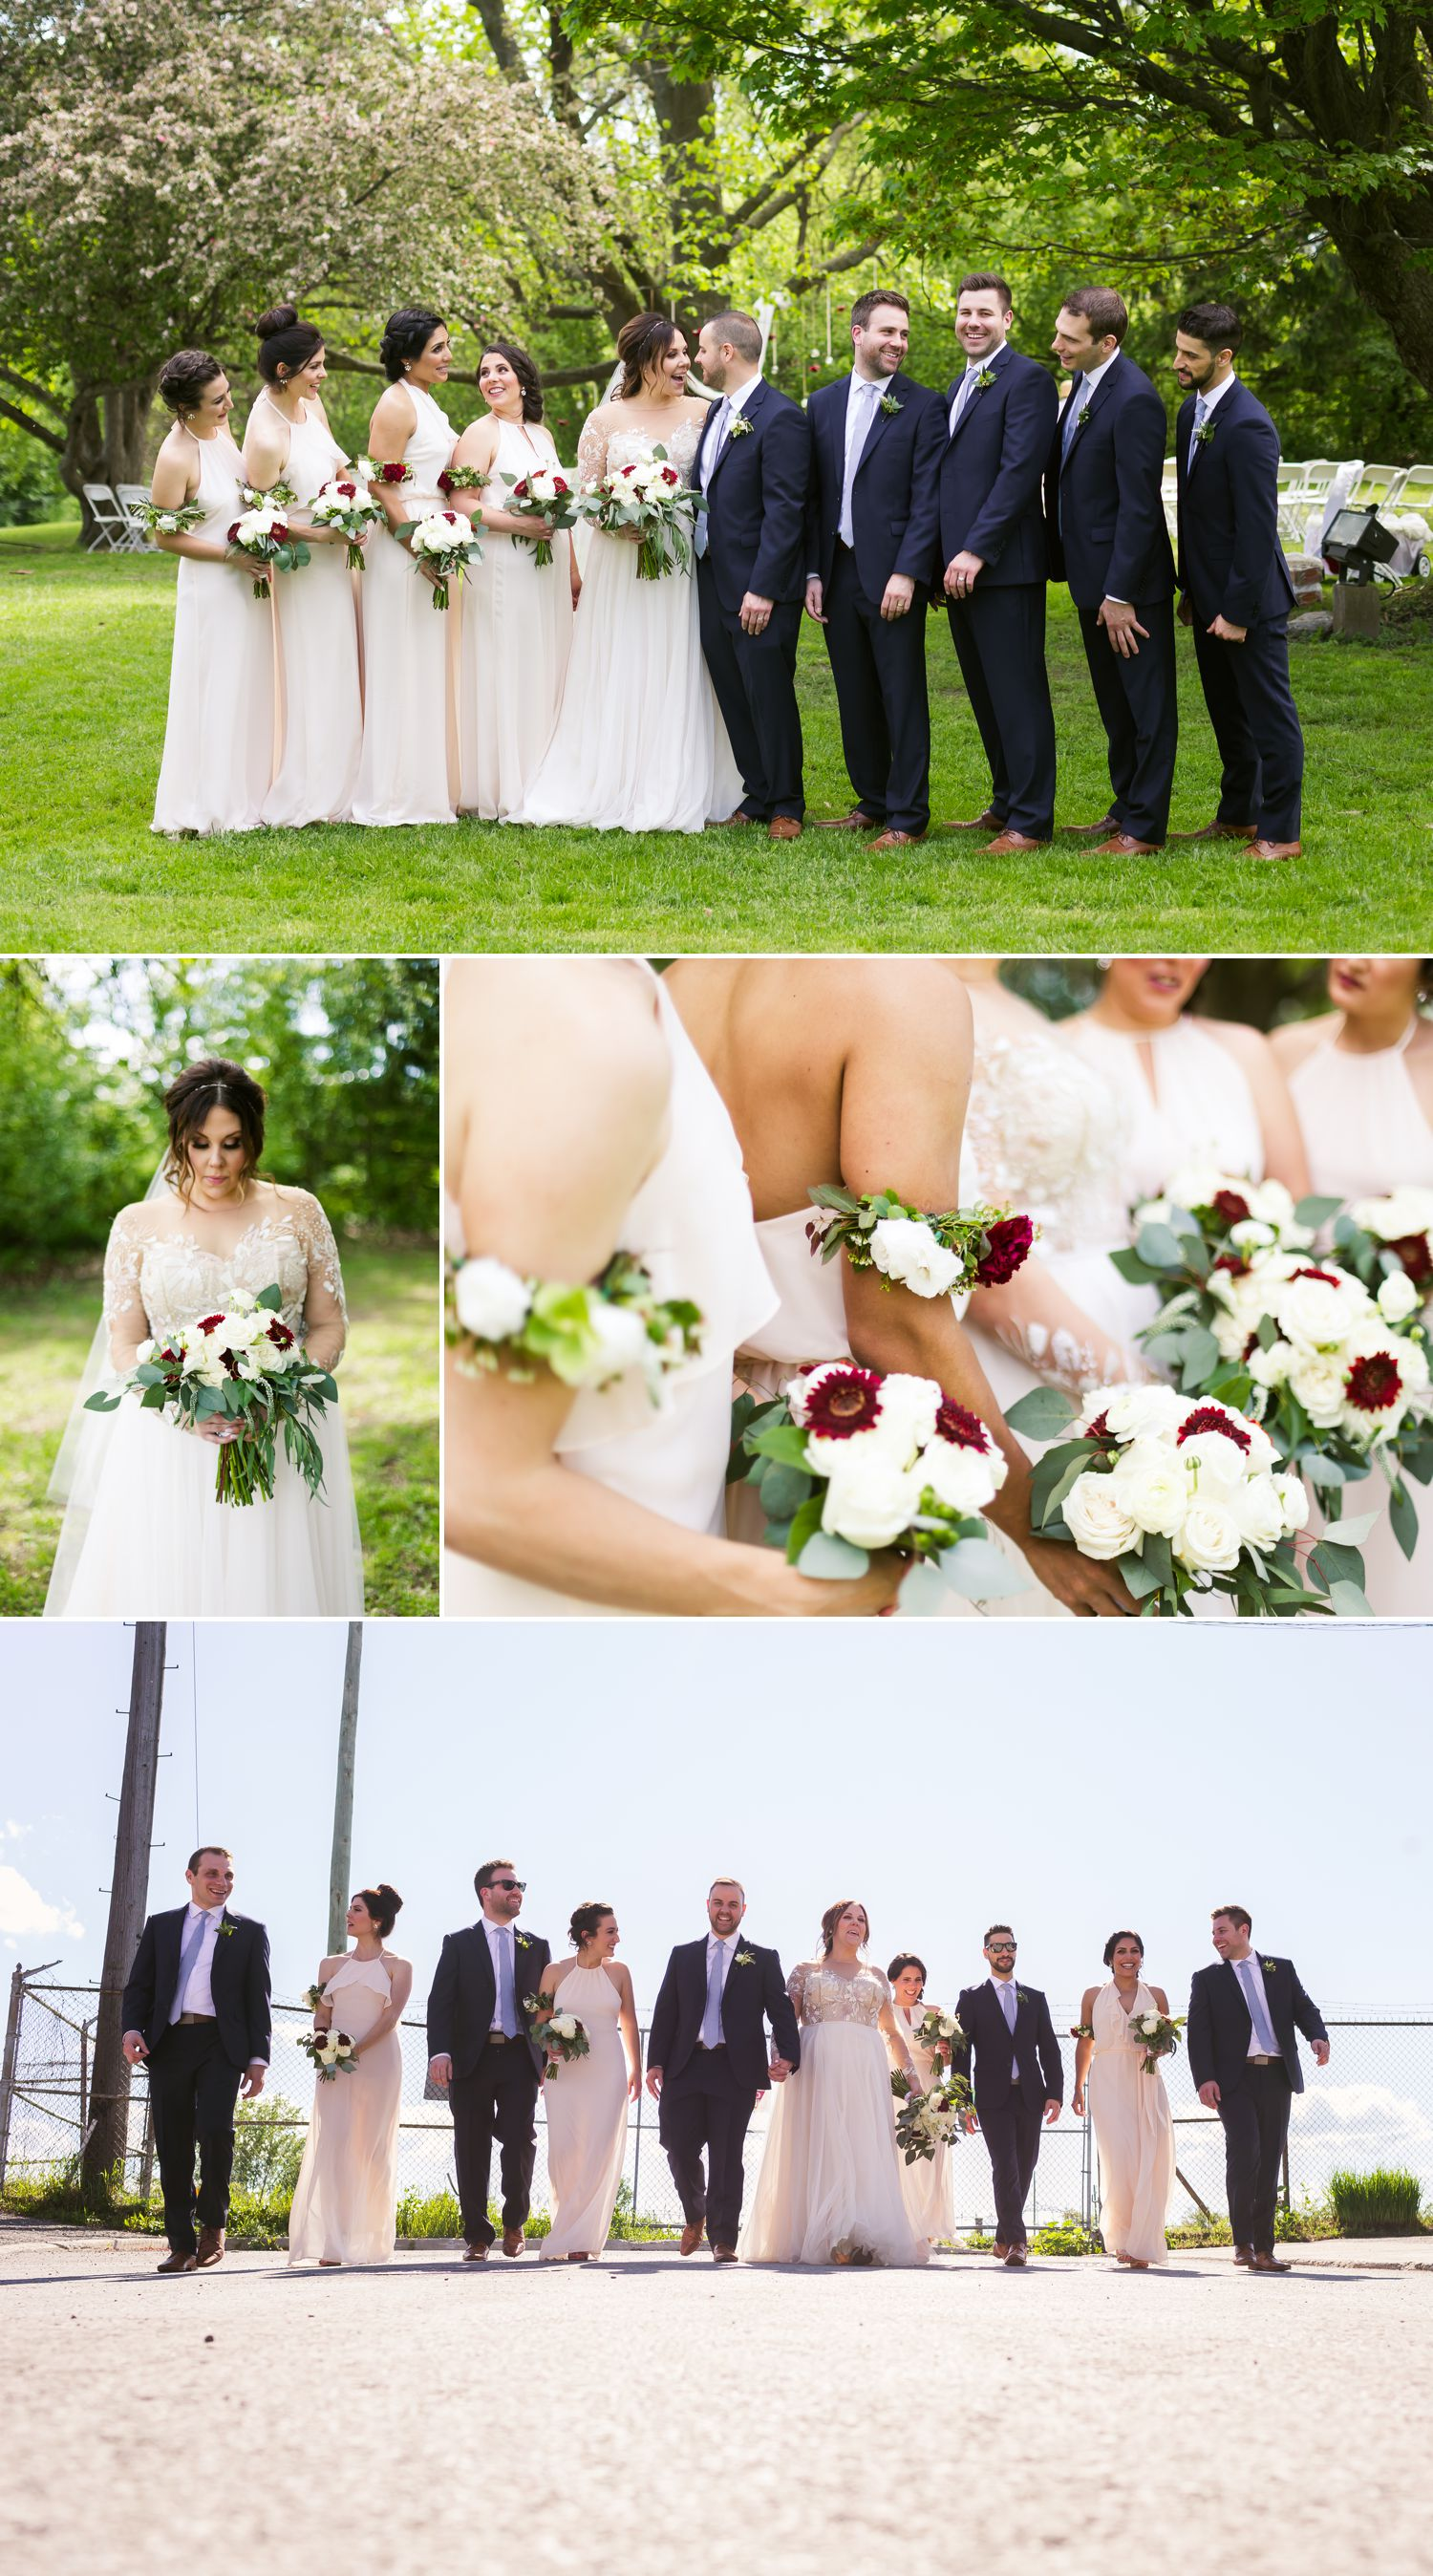 Portraits of the bride and groom with their wedding party outside at Billings Estate in Ottawa